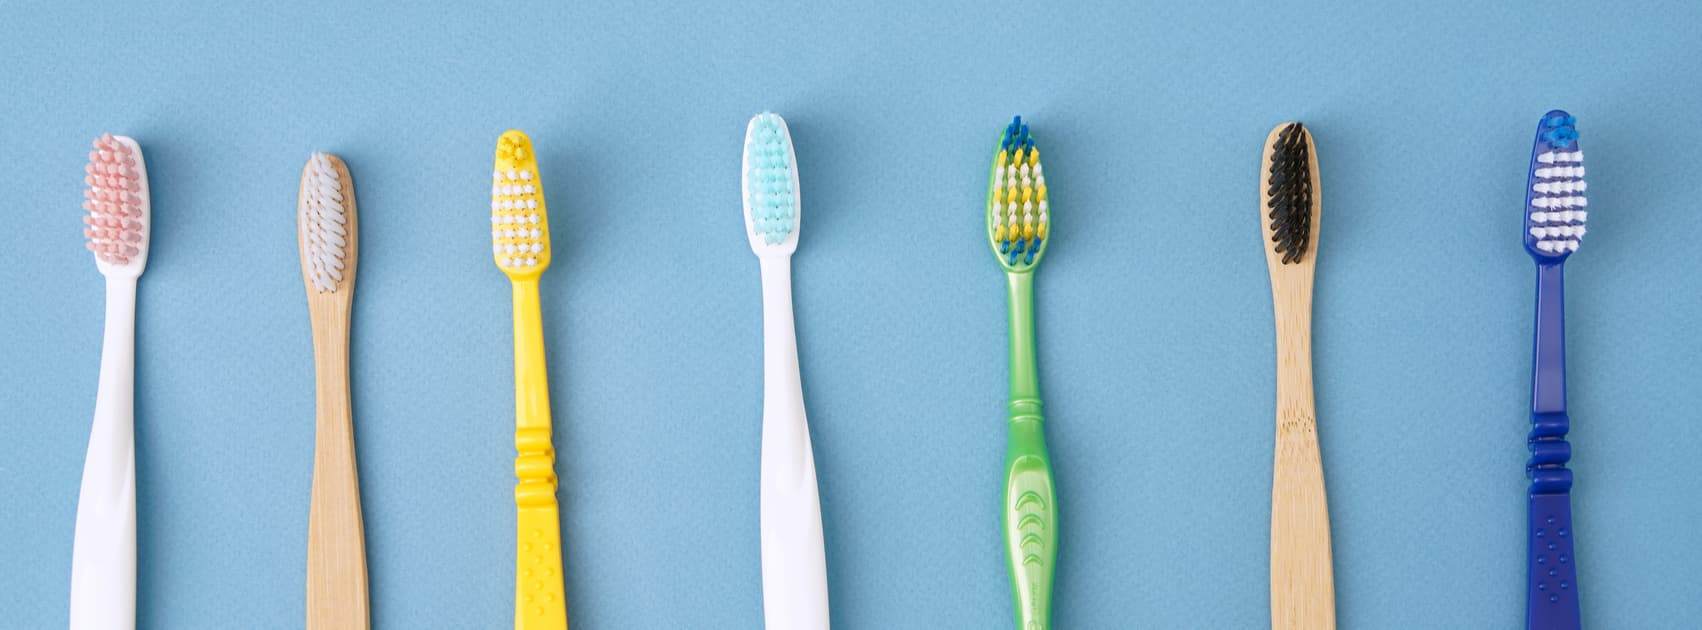 Soft vs Medium vs Hard Toothbrush